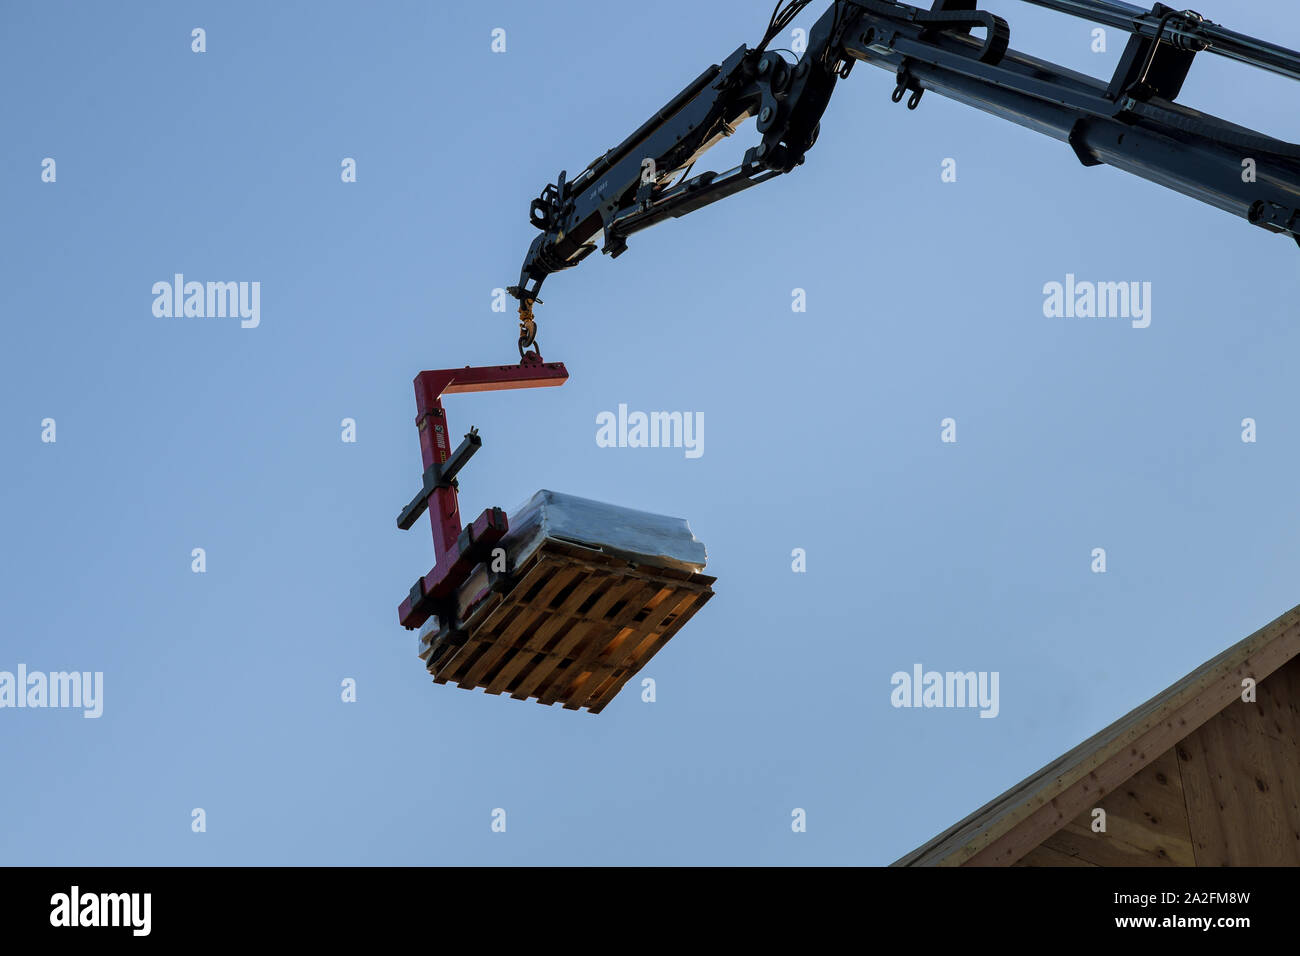 Construction building industry details in progress boom truck forklift crane roof into plate on new home Stock Photo